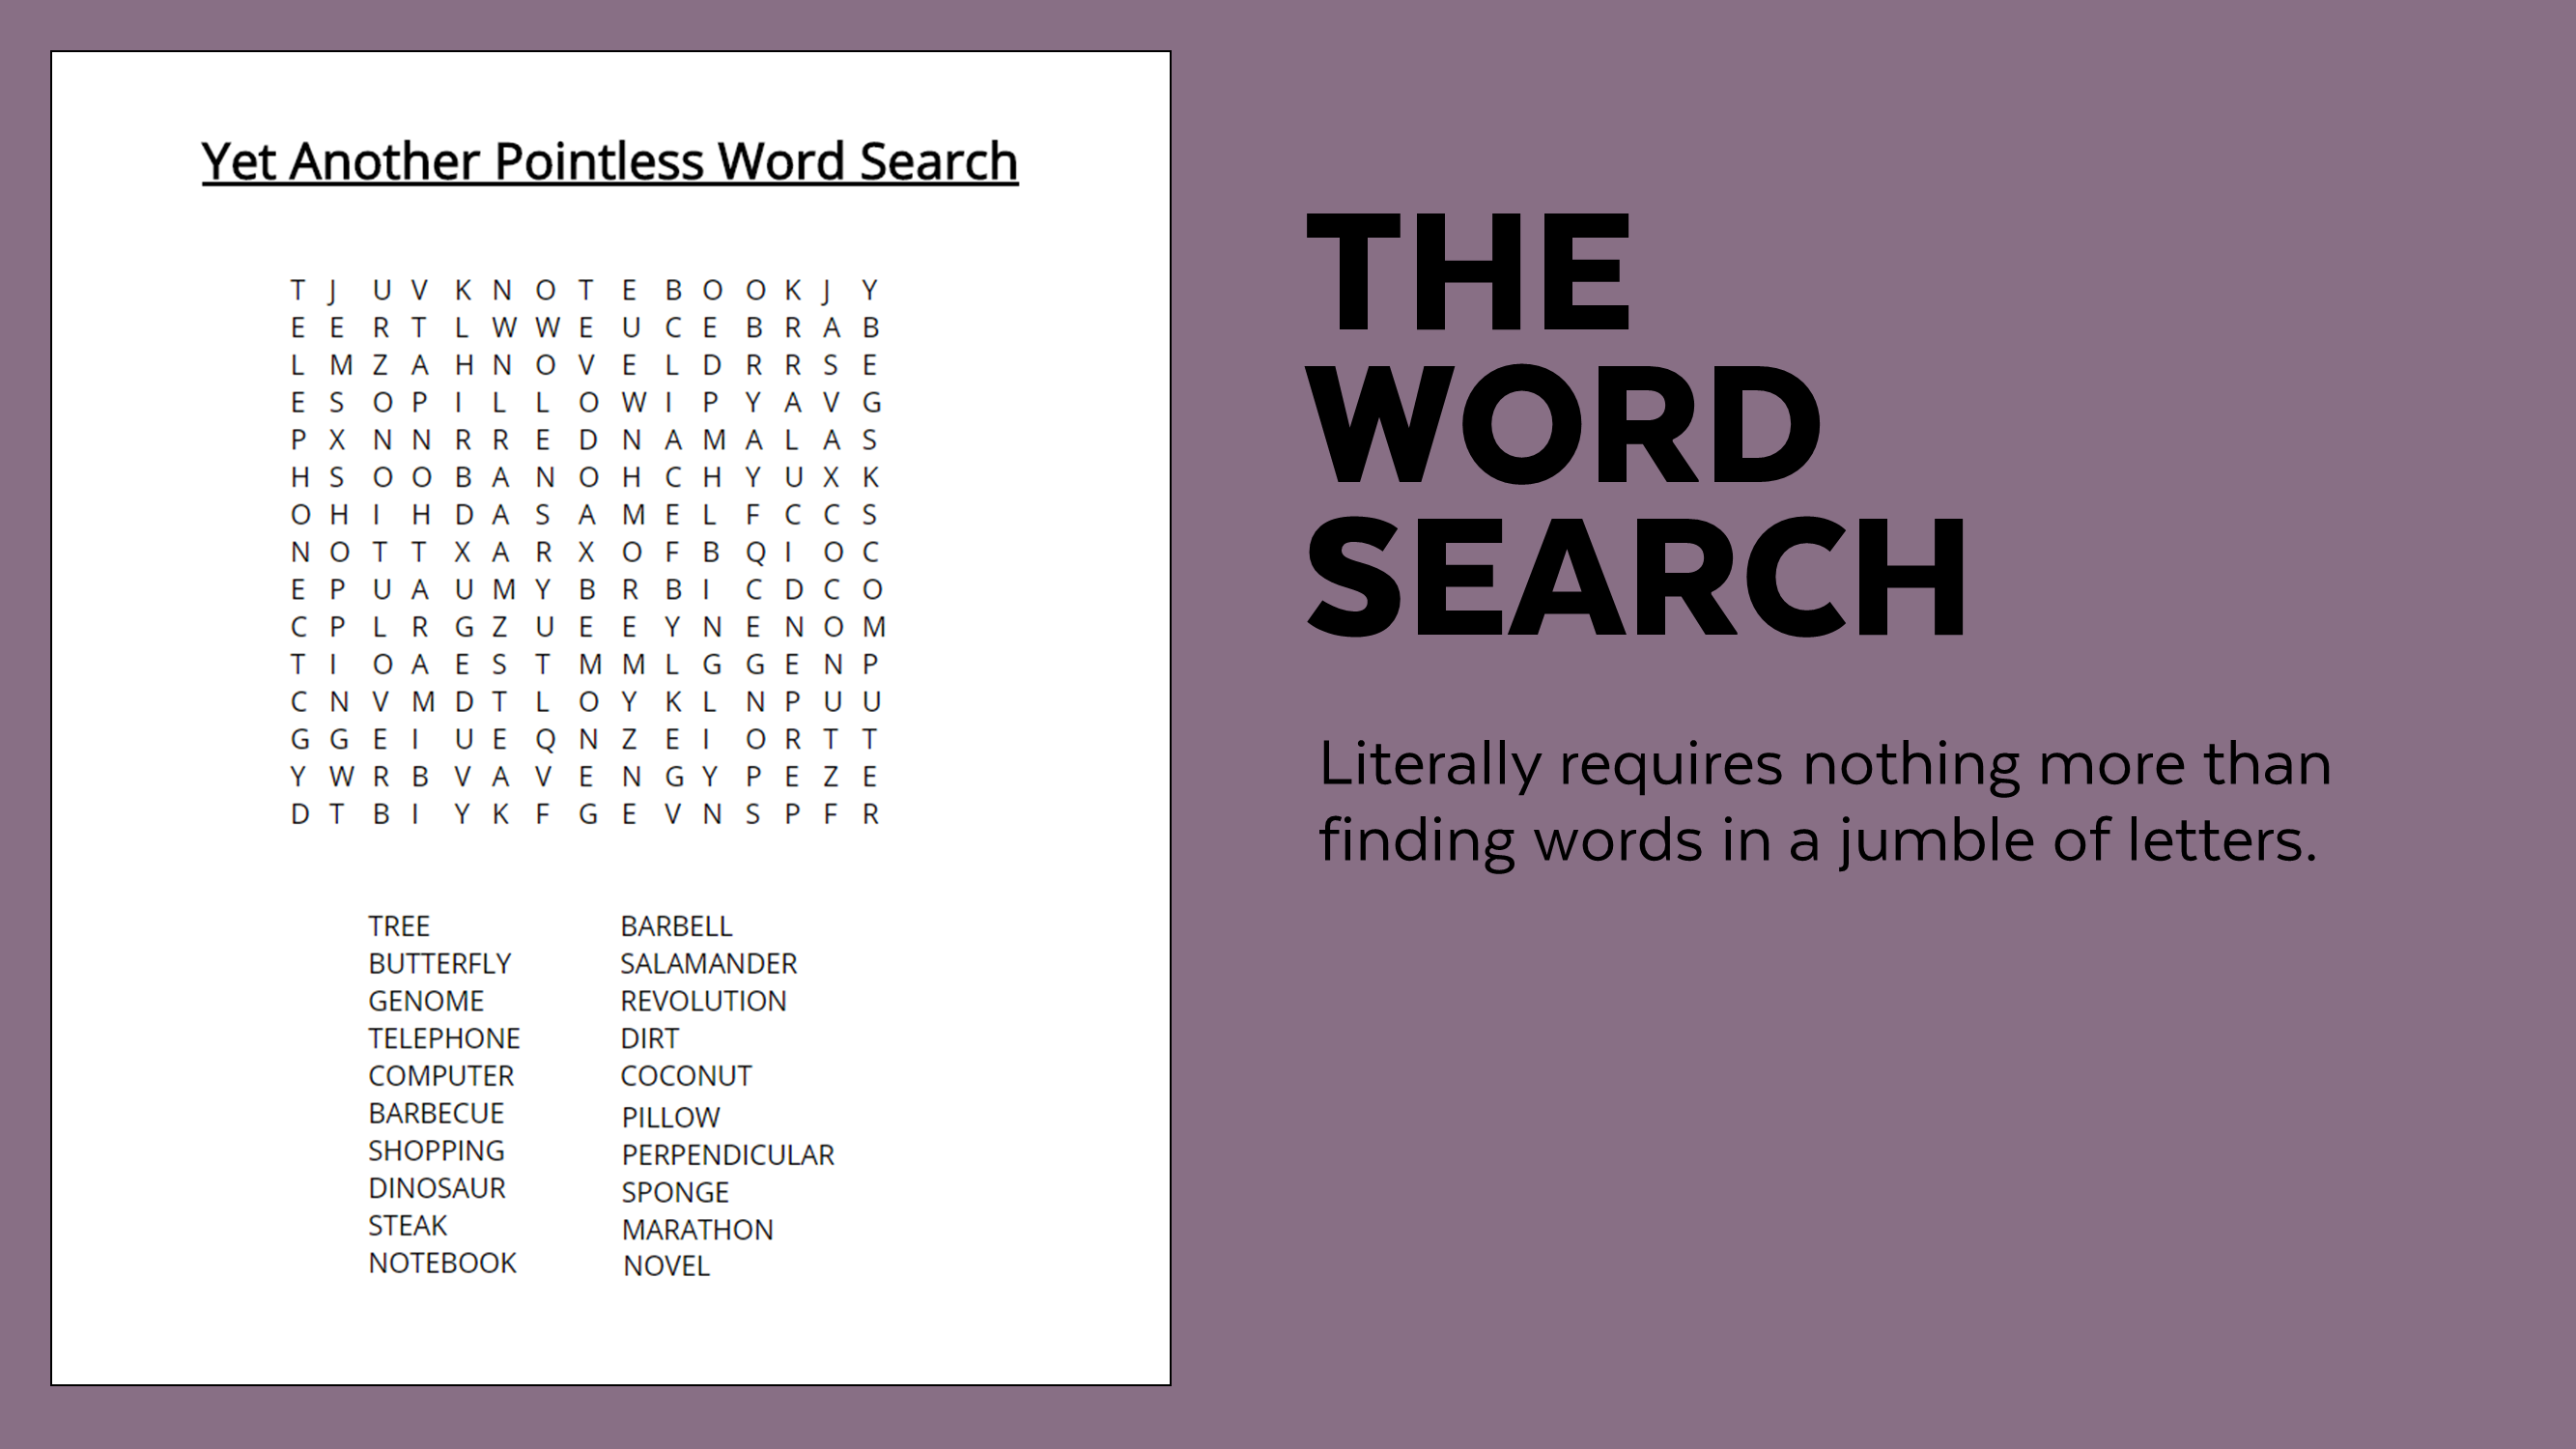 006 Sample Word Search Essay Example Superfluous Part Of An Awesome Crossword Clue Full